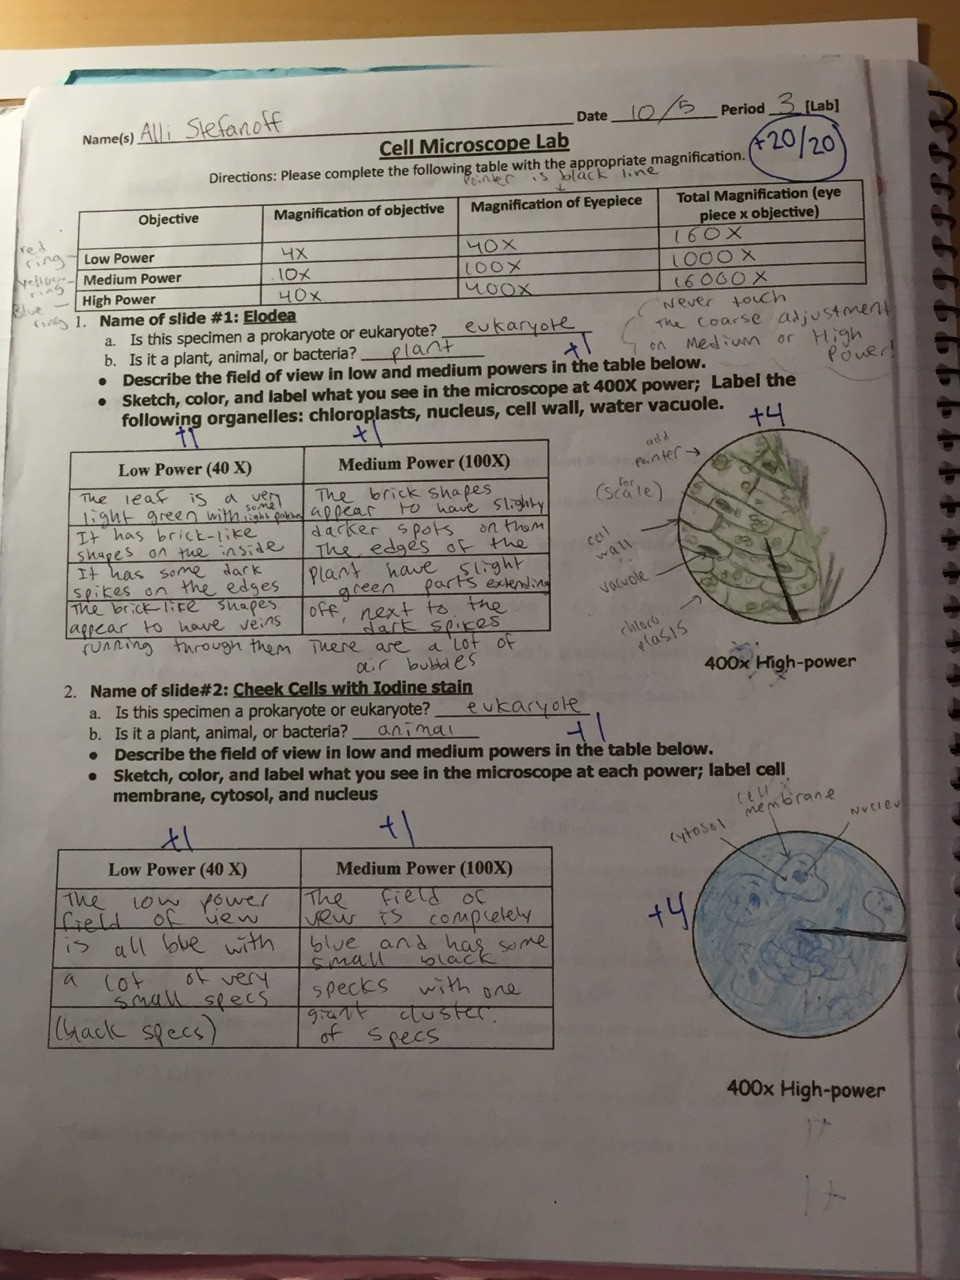 This is a photo of my Cell Microscope Lab report. This is in my passions section because it was one of my favorite labs to do. It was amazing to see all the cells underneath the microscope!